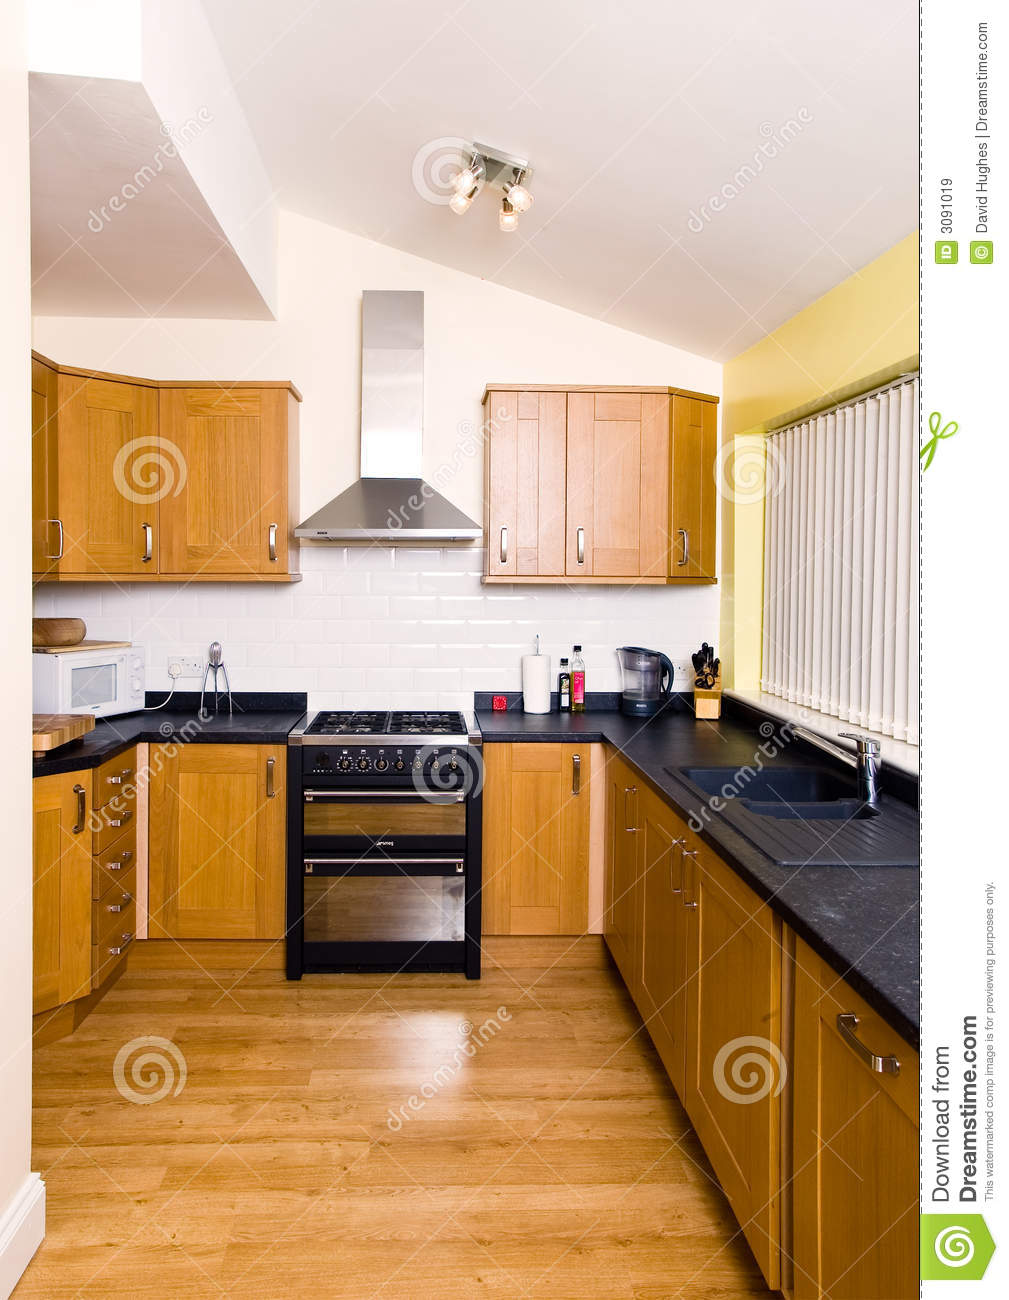 Small Fitted Kitchen Small Fitted Kitchen Royalty Free Stock Images Image 3091019